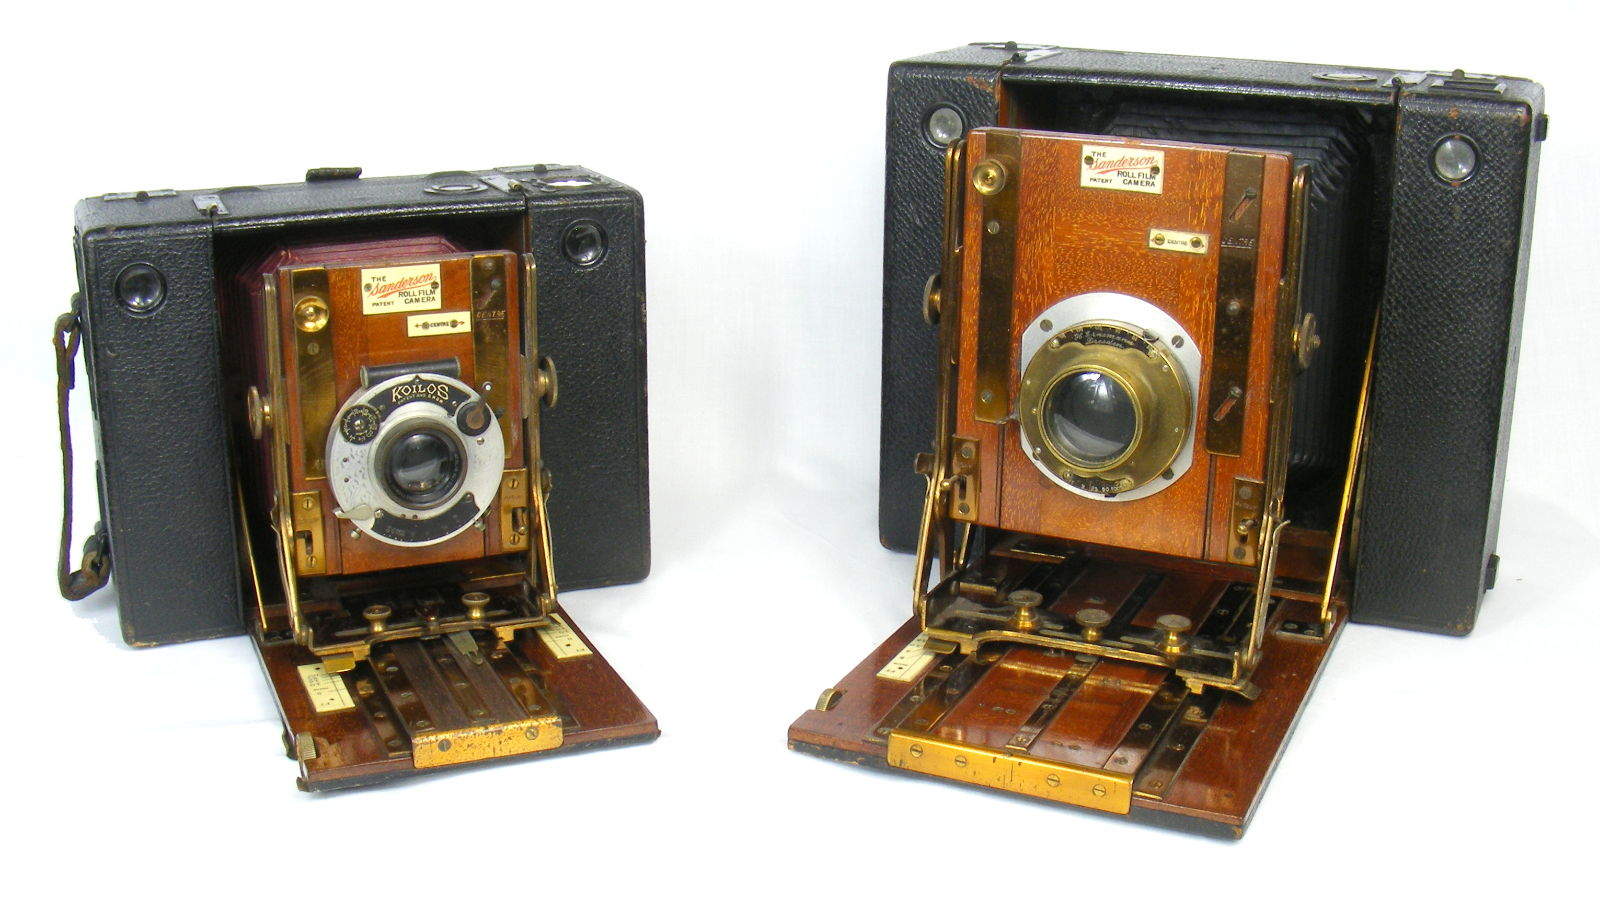 Image of both models of Sanderson Roll Film camera